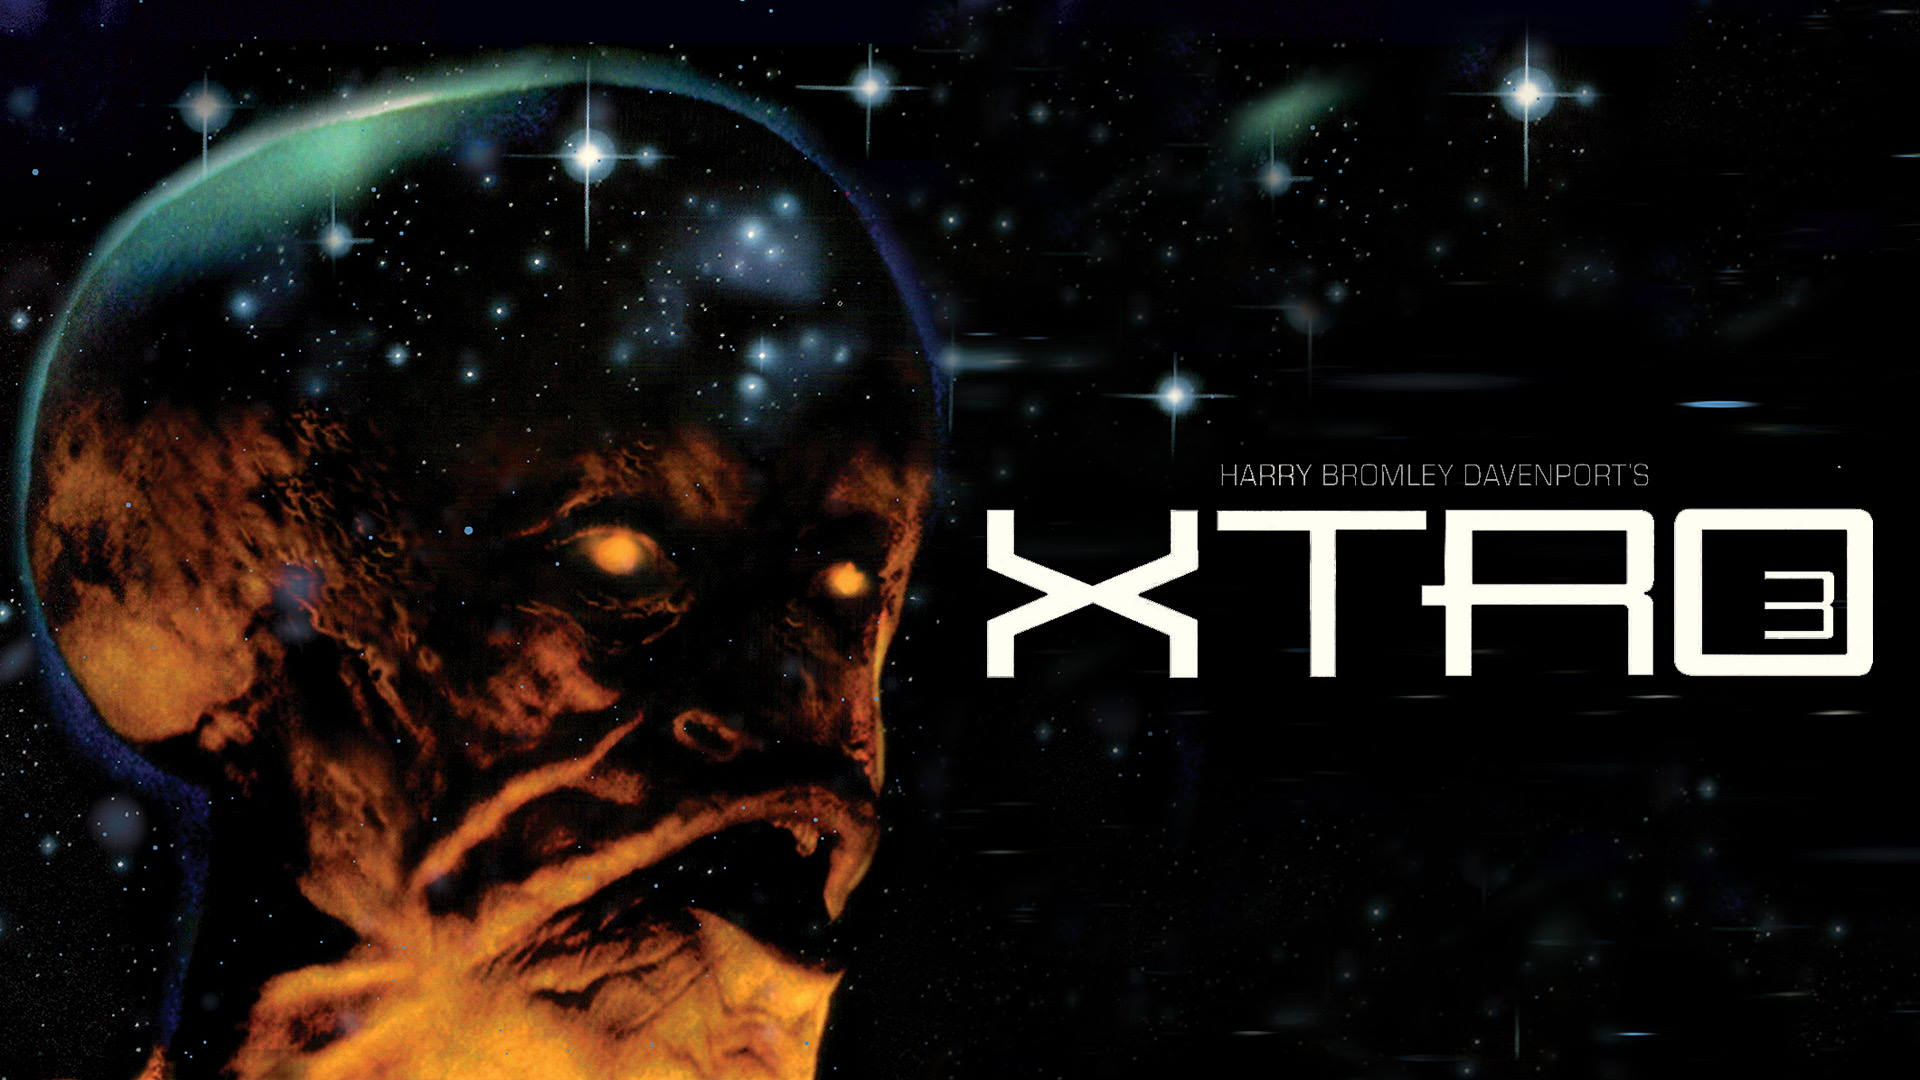 Xtro 3: Watch the Skies | Official Trailer | FlixHouse